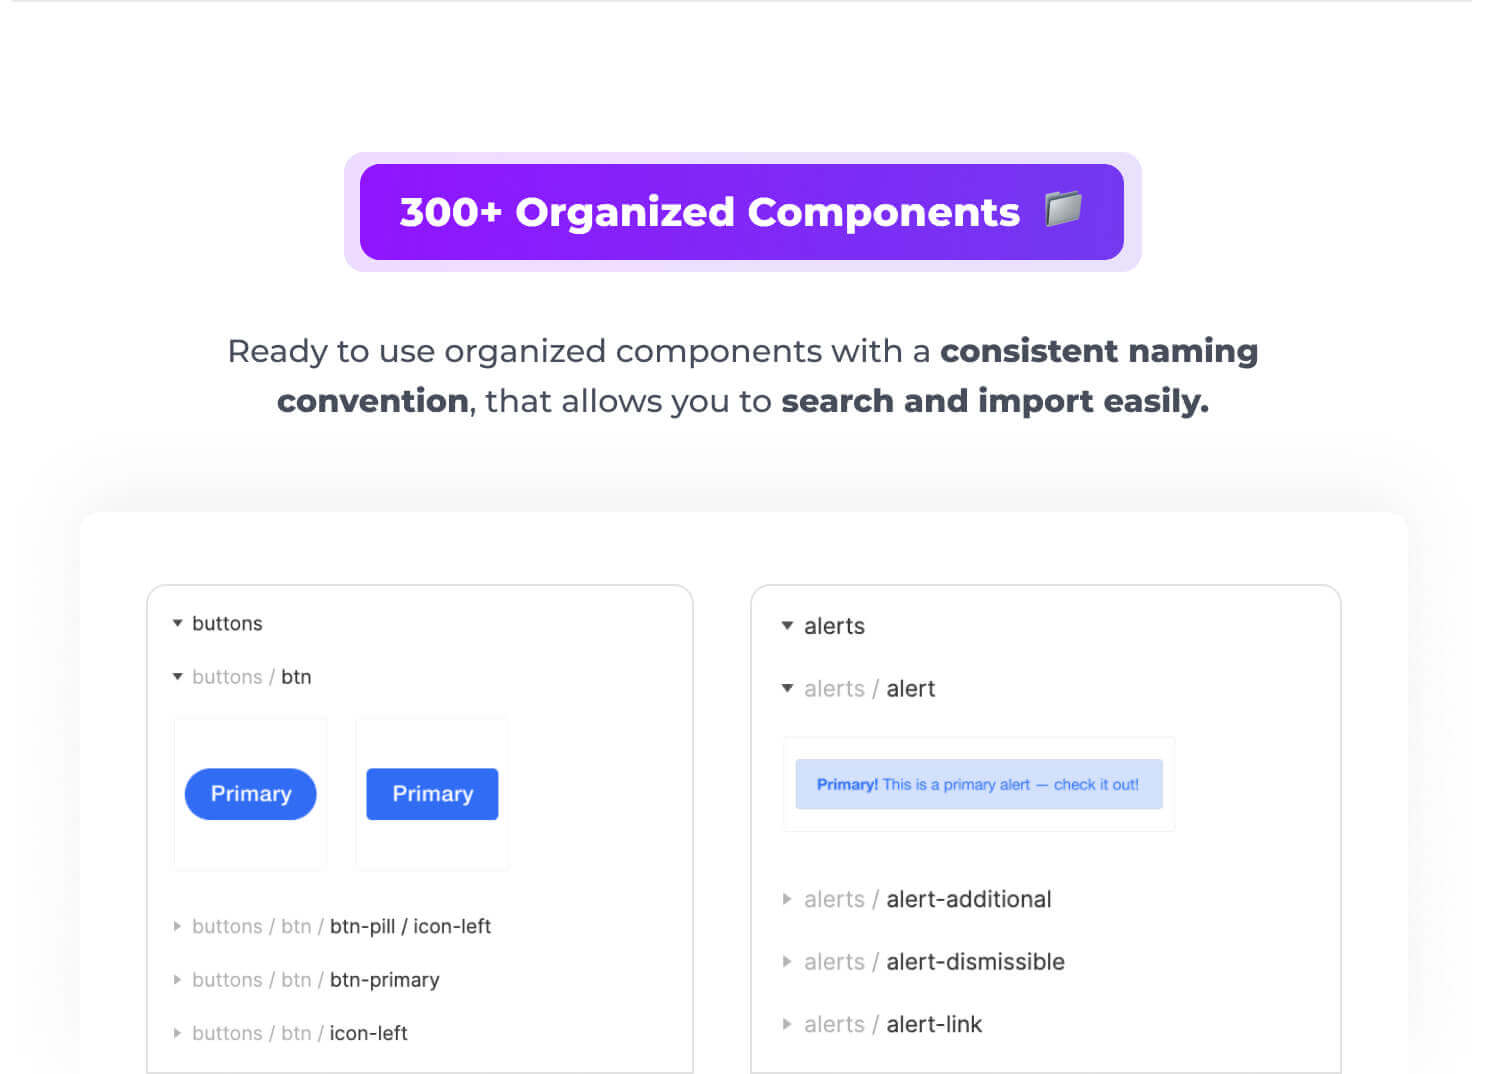 300+ Organized Components